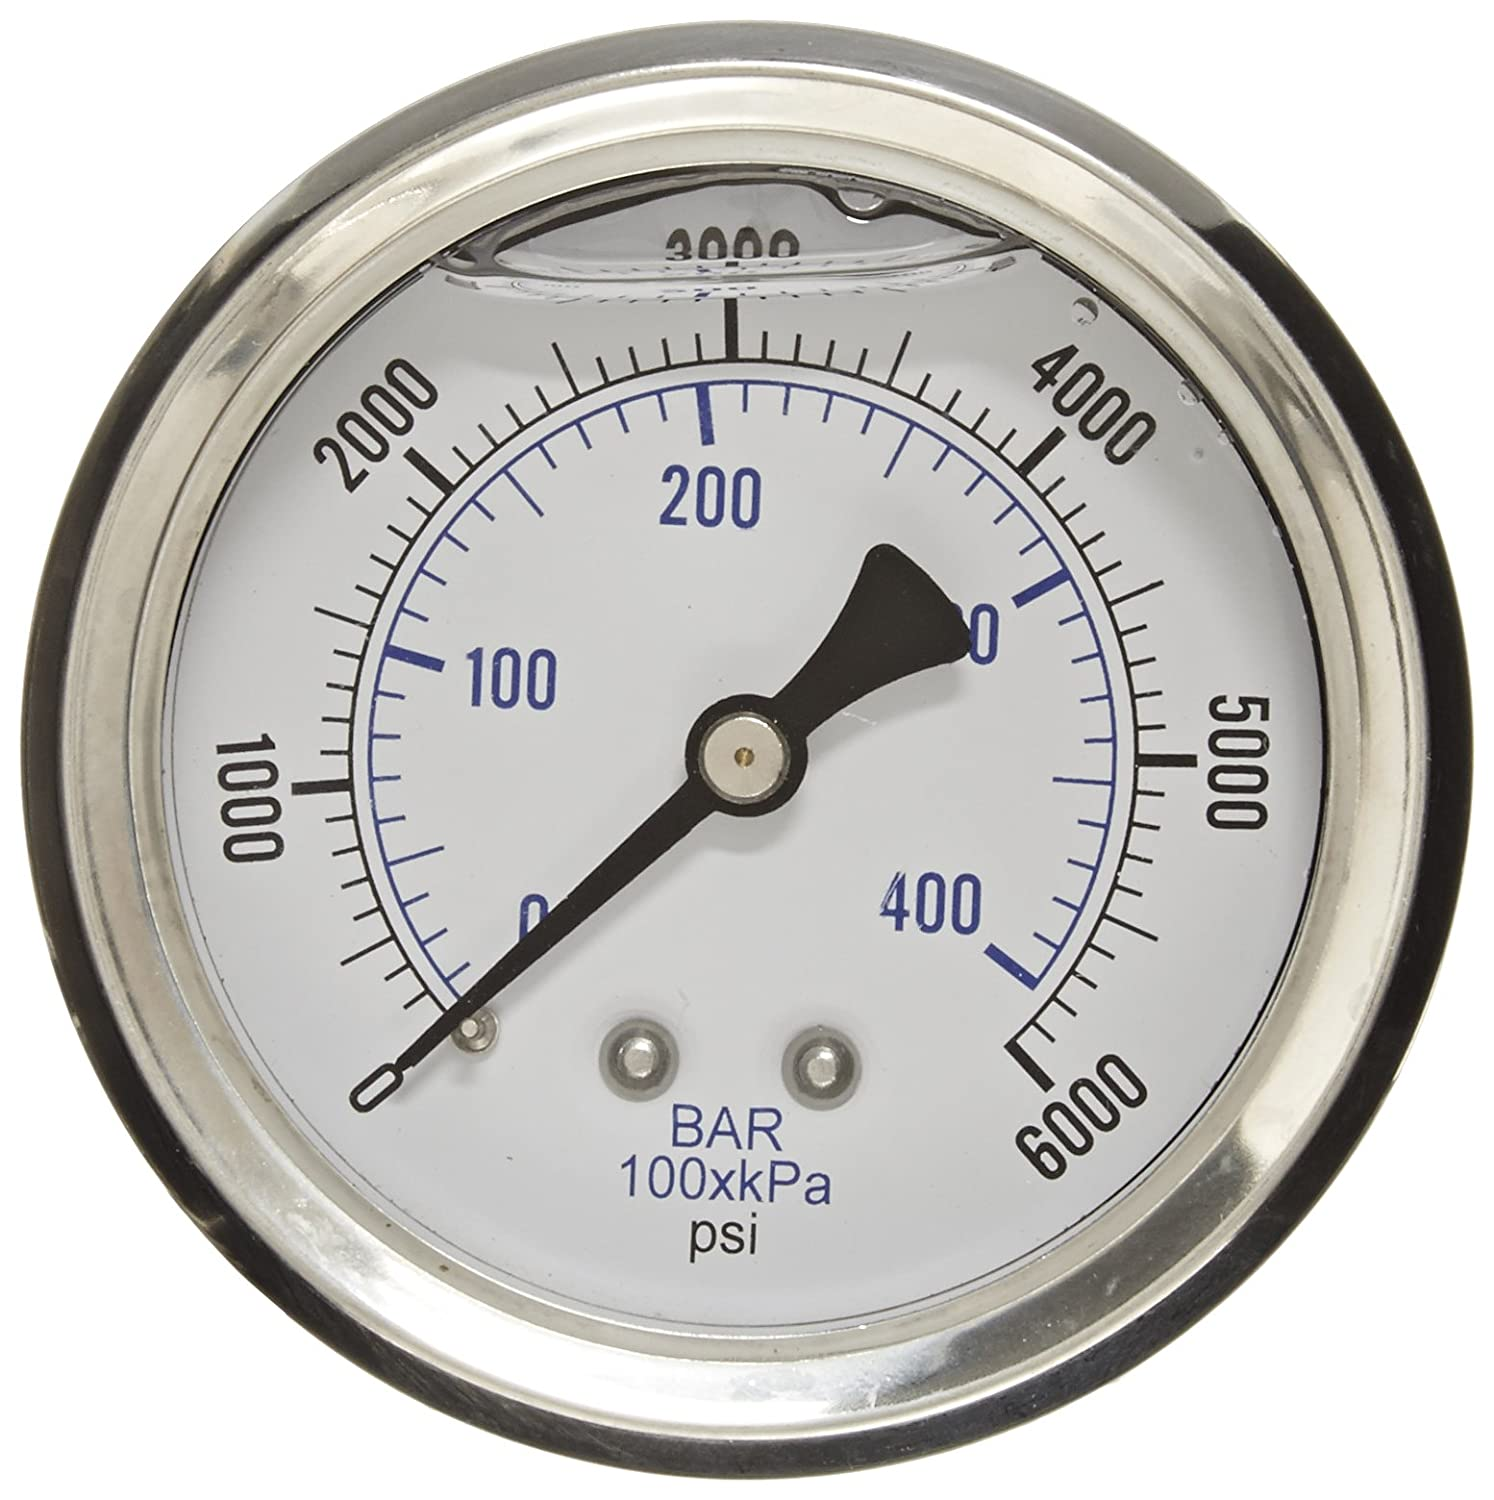 PIC Gauge PRO 202L 254S Glycerin Filled Industrial Center Back Mount Pressure Gauge with Stainless Steel Case Brass Internals Plastic Lens 2 1 2 Dial Size 1 4 Male NPT 0 6000 psi